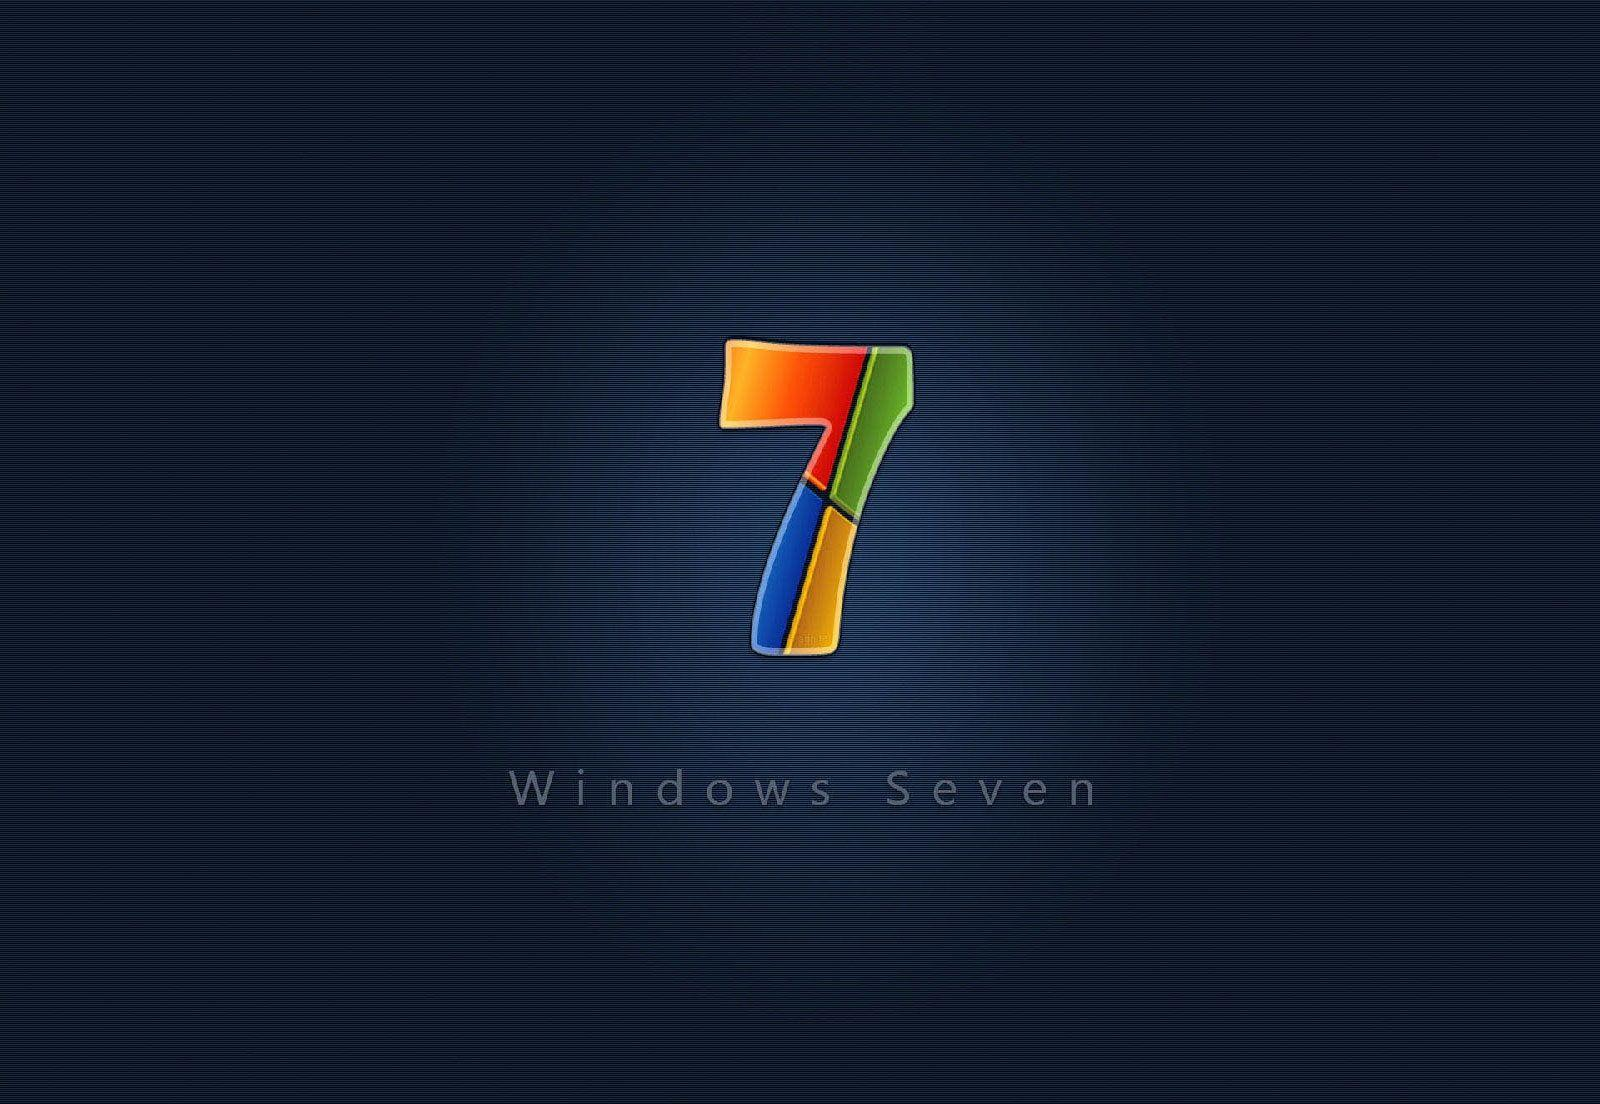 QQ Wallpapers: Seven Cool Windows 7 Wallpapers / Backgrounds